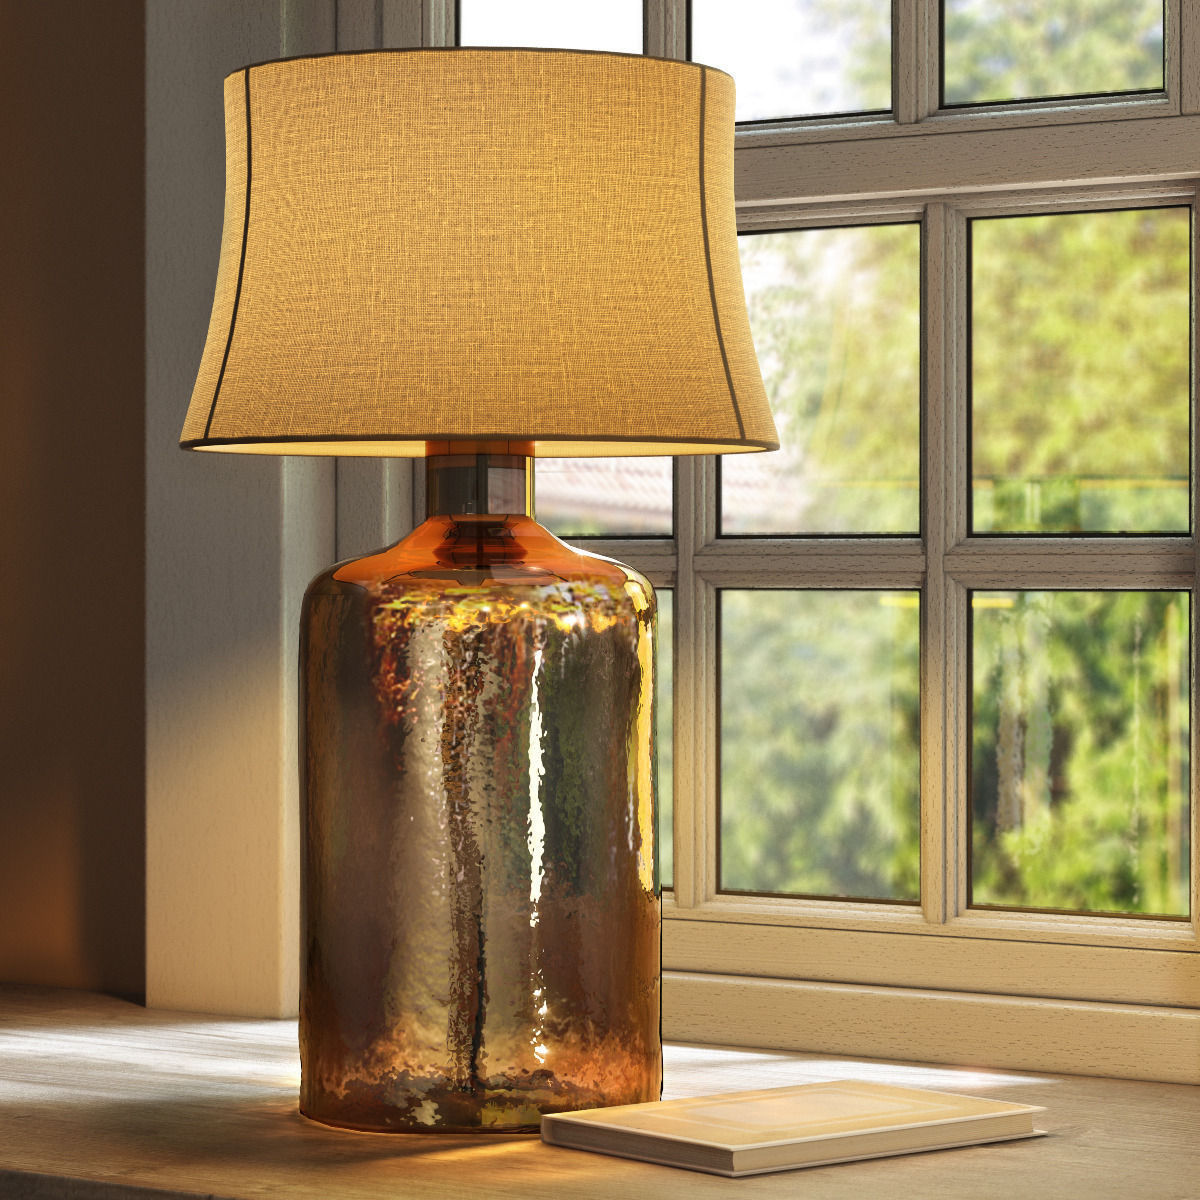 Pottery Barn Clift Glass Table Lamp Base Espresso 3d Model Max